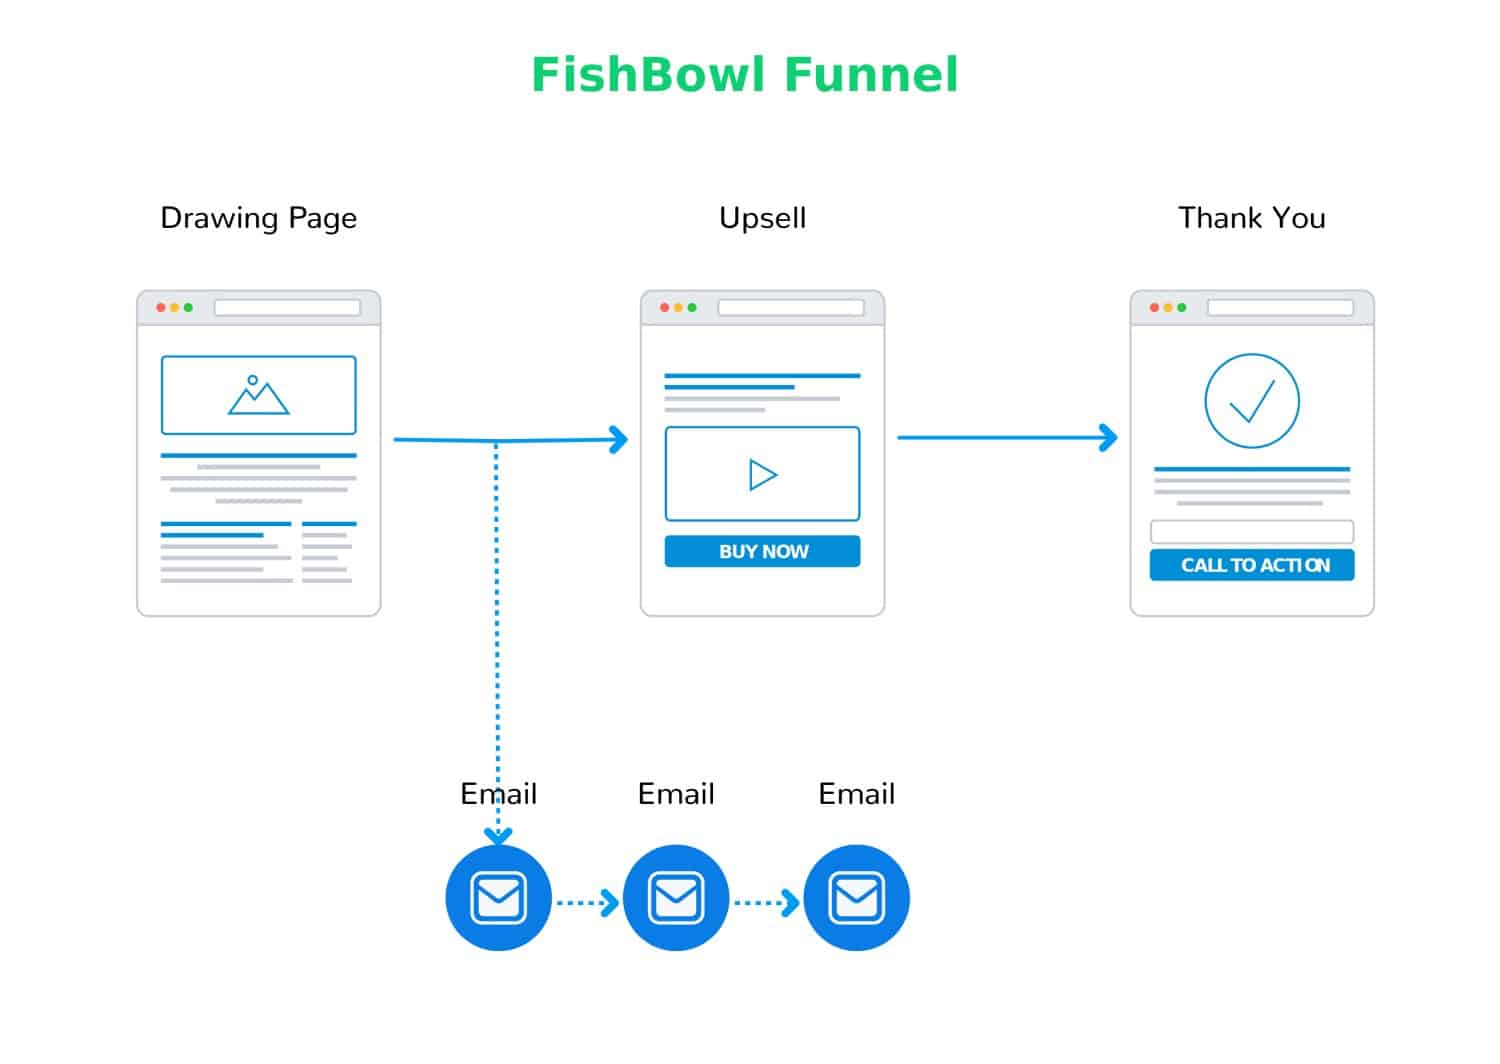 Fishbowl Funnel